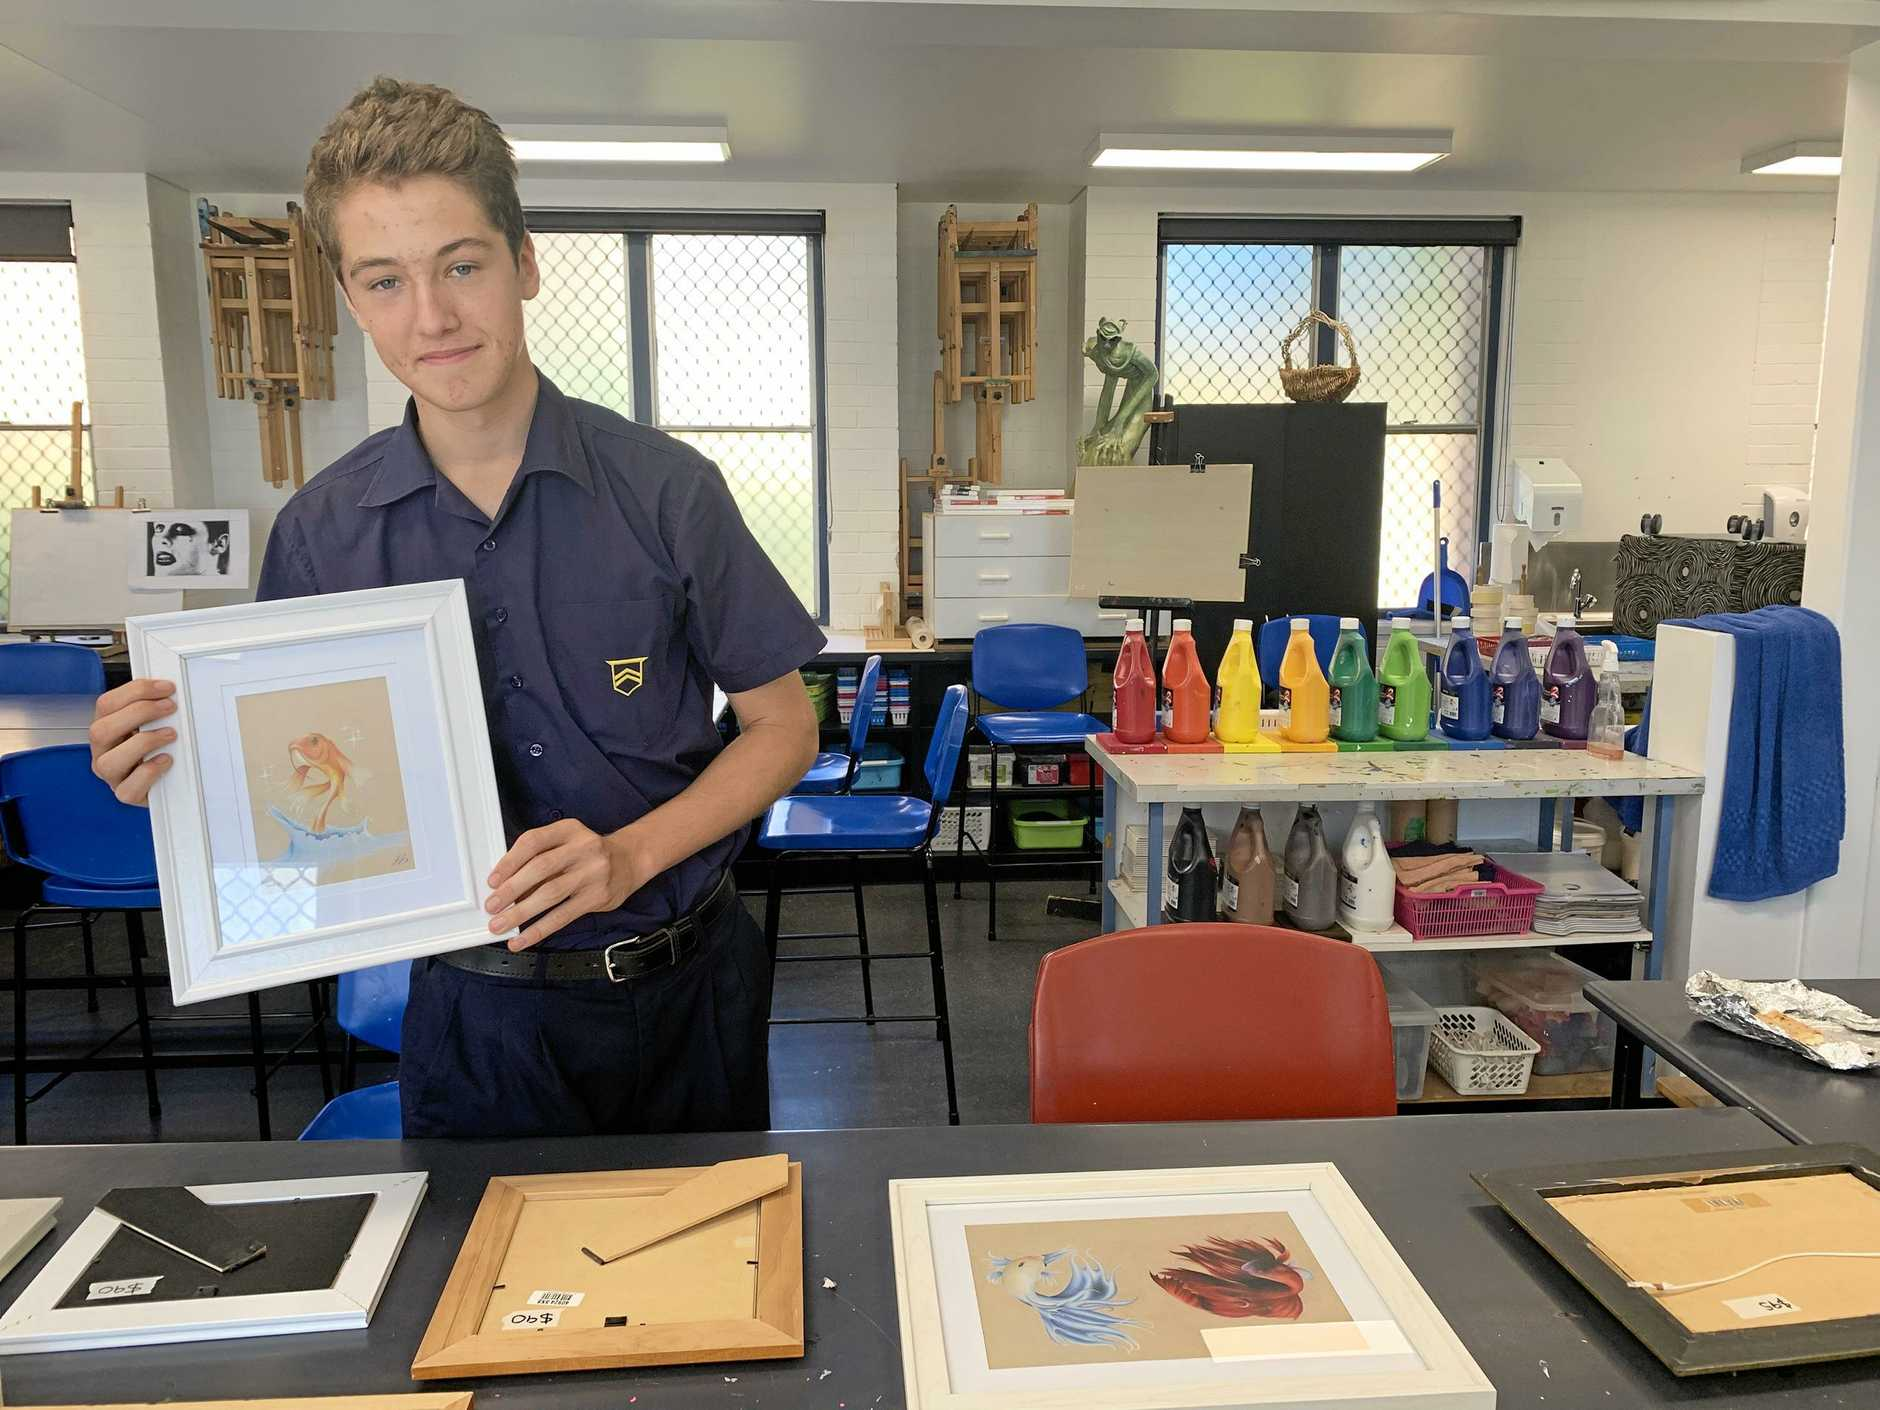 BUDDING ARTIST: Toowoomba Grammar School student Jacob Bunt with some of his artwork that will be displayed at the student art show.